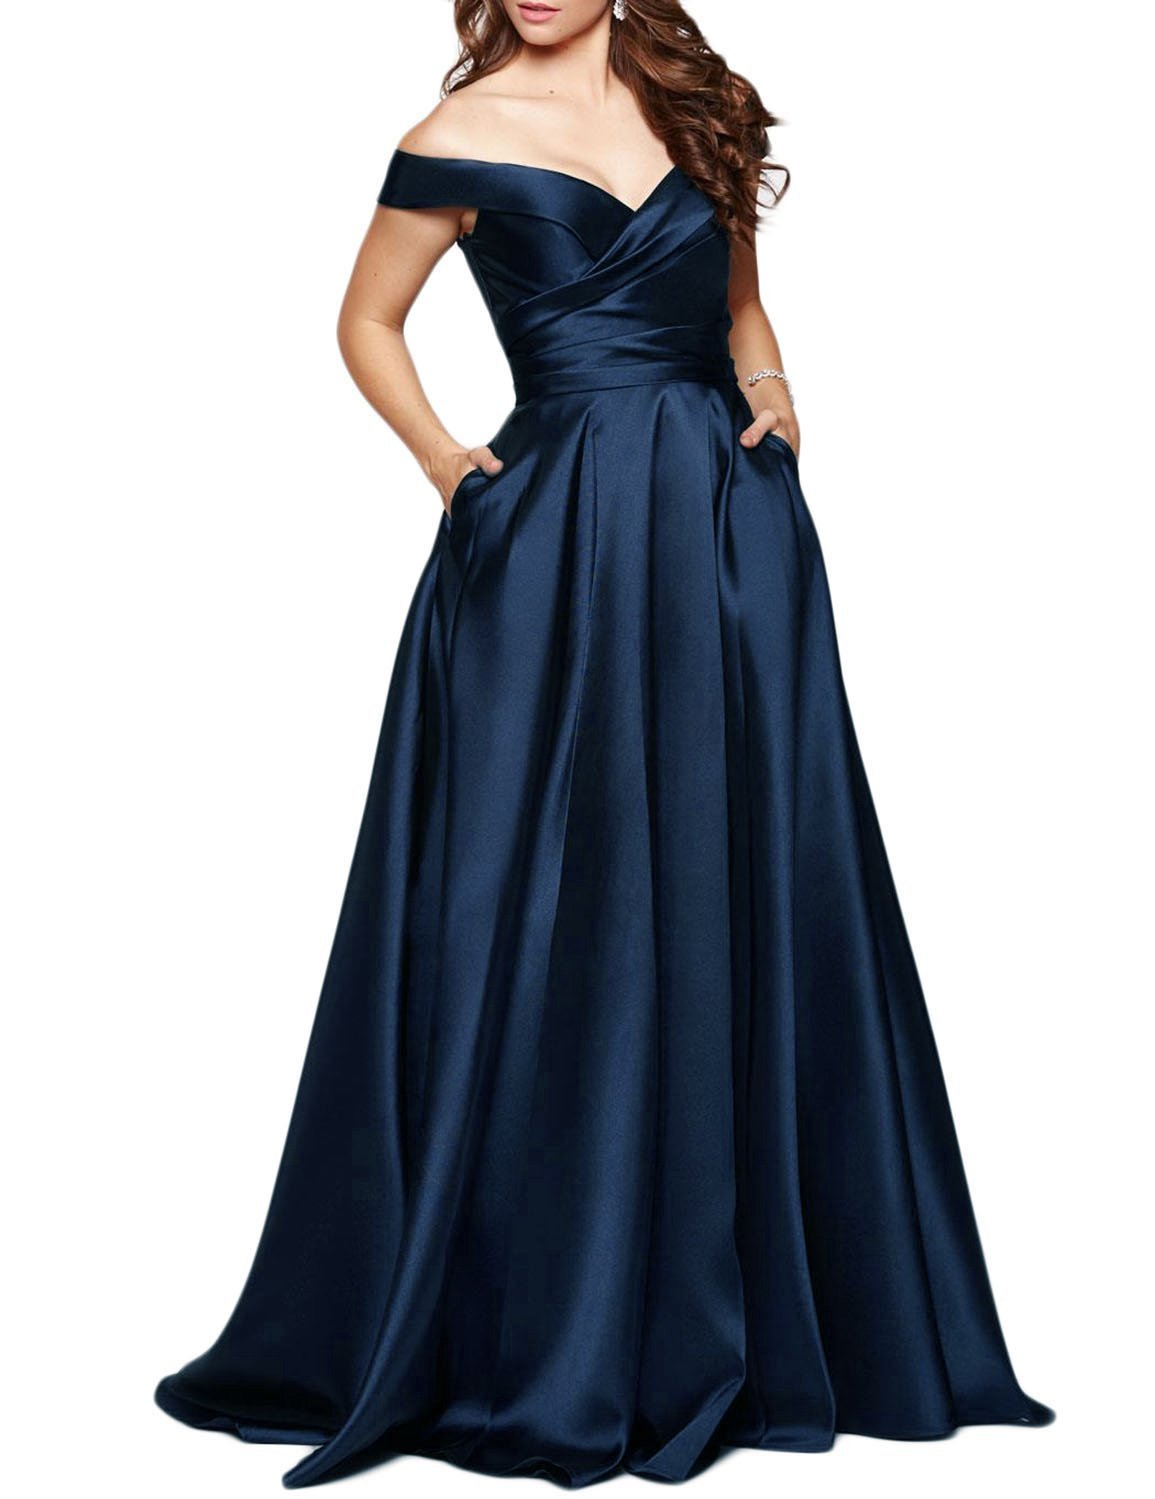 Women's Off Shoulder Long Prom Dress Pleated Evening Formal Gown with Pocket